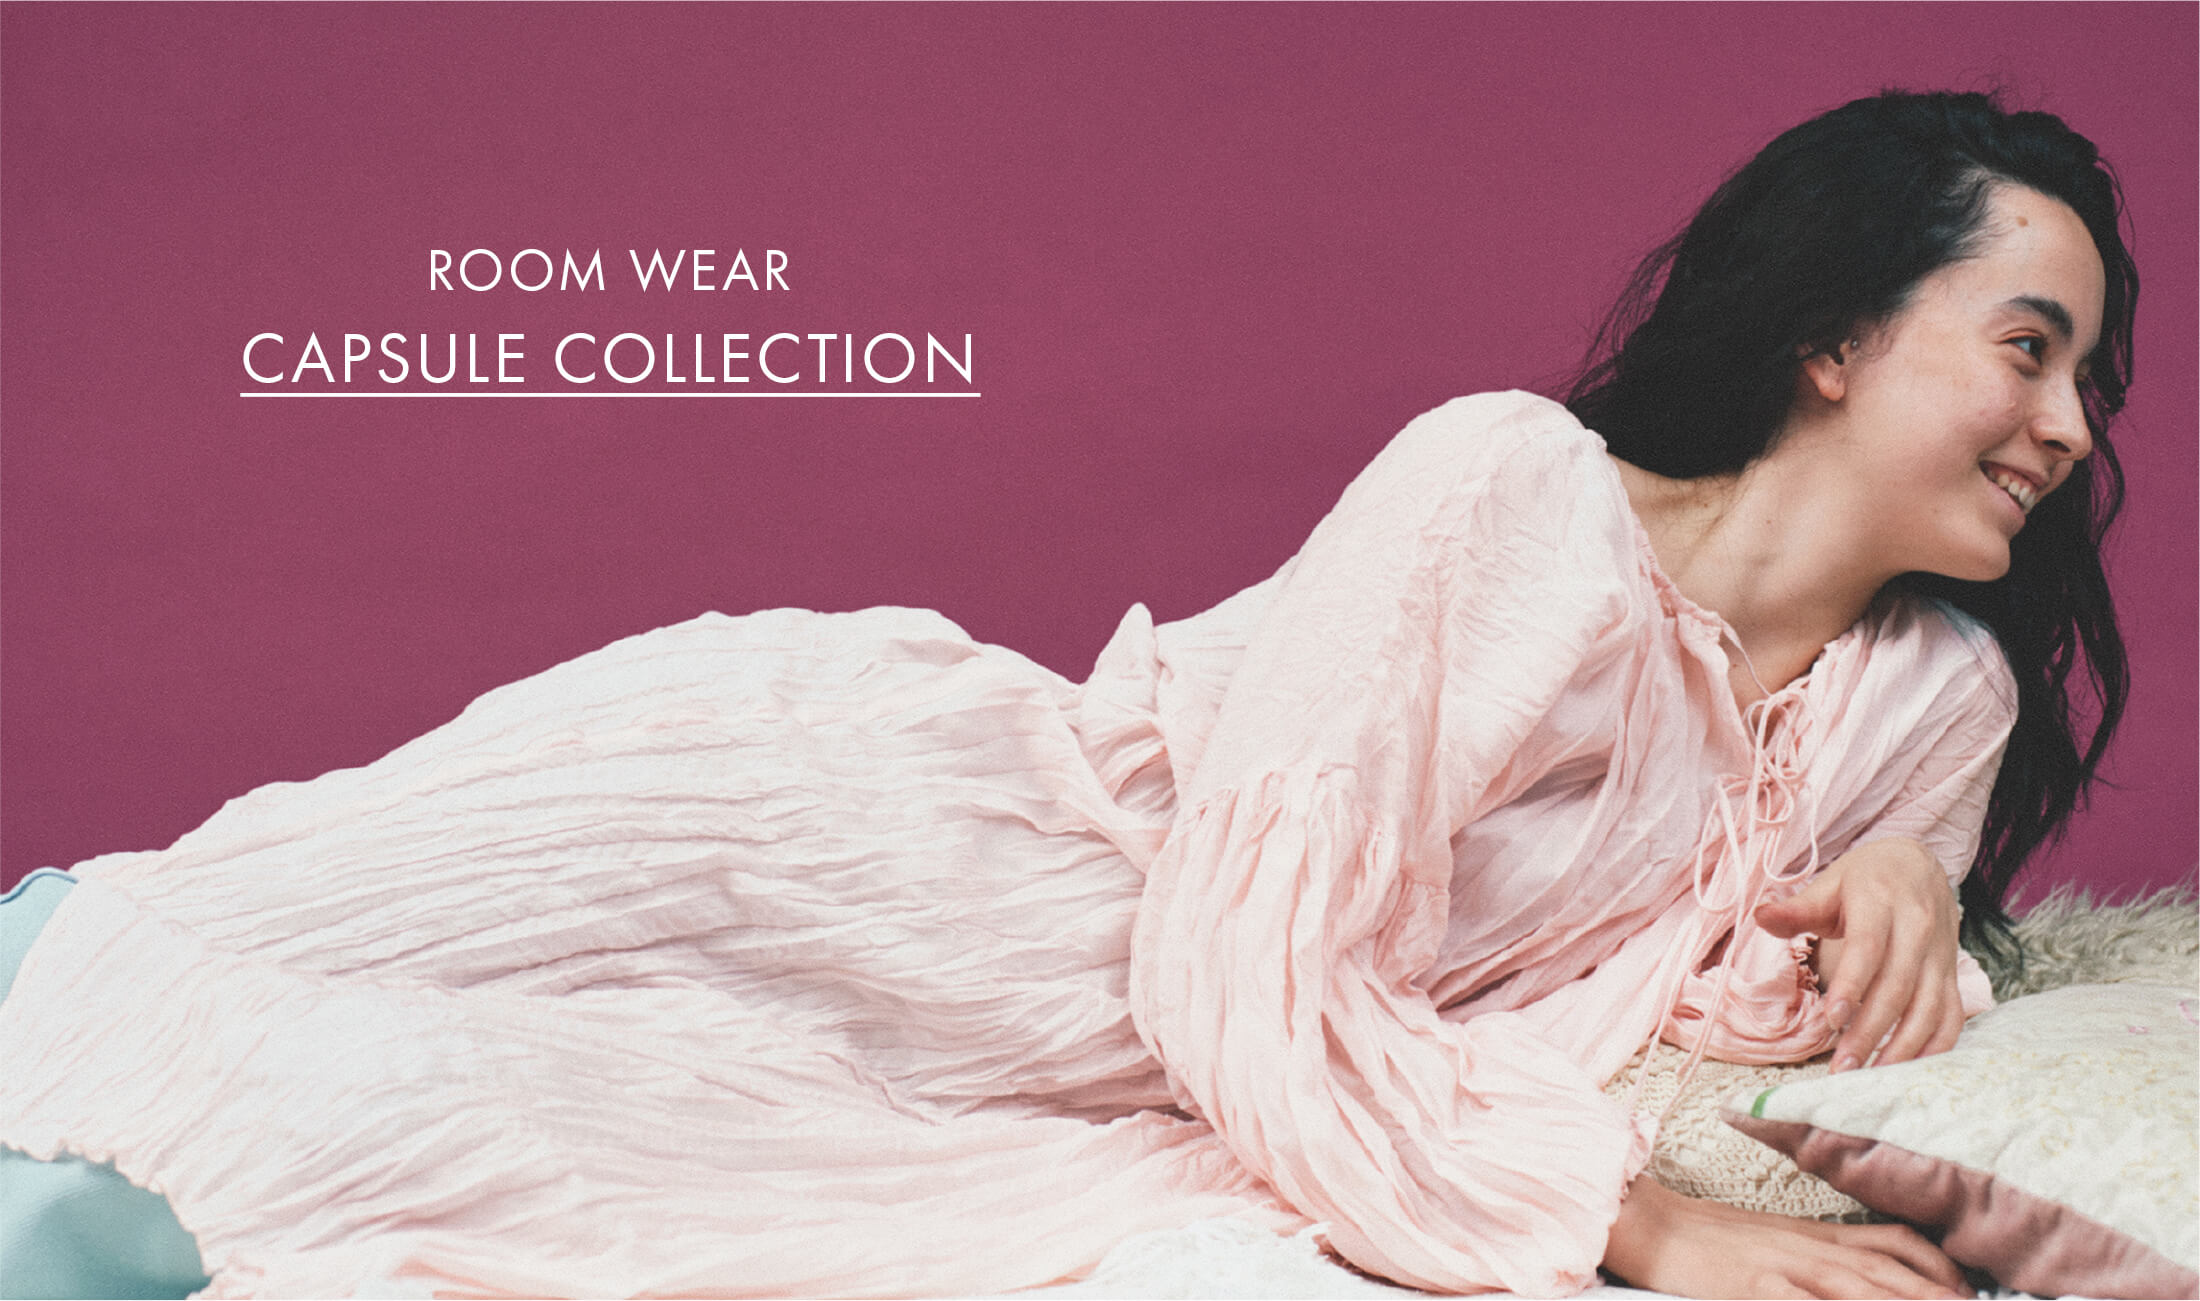 ROOM WEAR CUPSULE COLLECTION